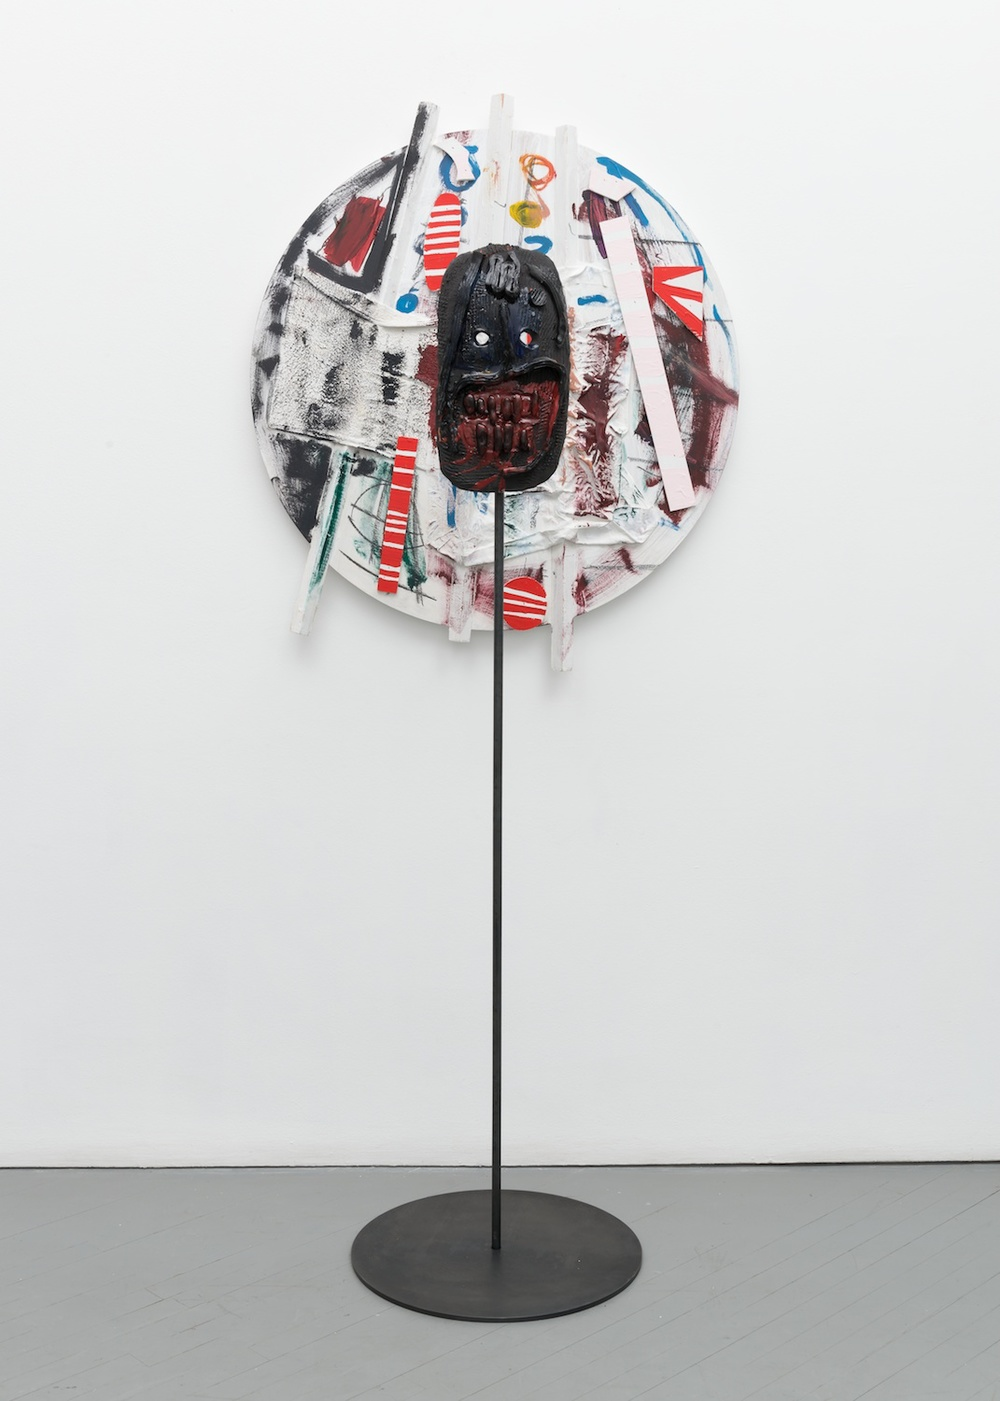 William J. O'Brien  Untitled  2013/2014 Mixed media on wood; Glazed ceramic on steel armature 35h x 38w in (painting); 66 ½h x 20w x 20d in (ceramic + stand) WOB908/WOB936